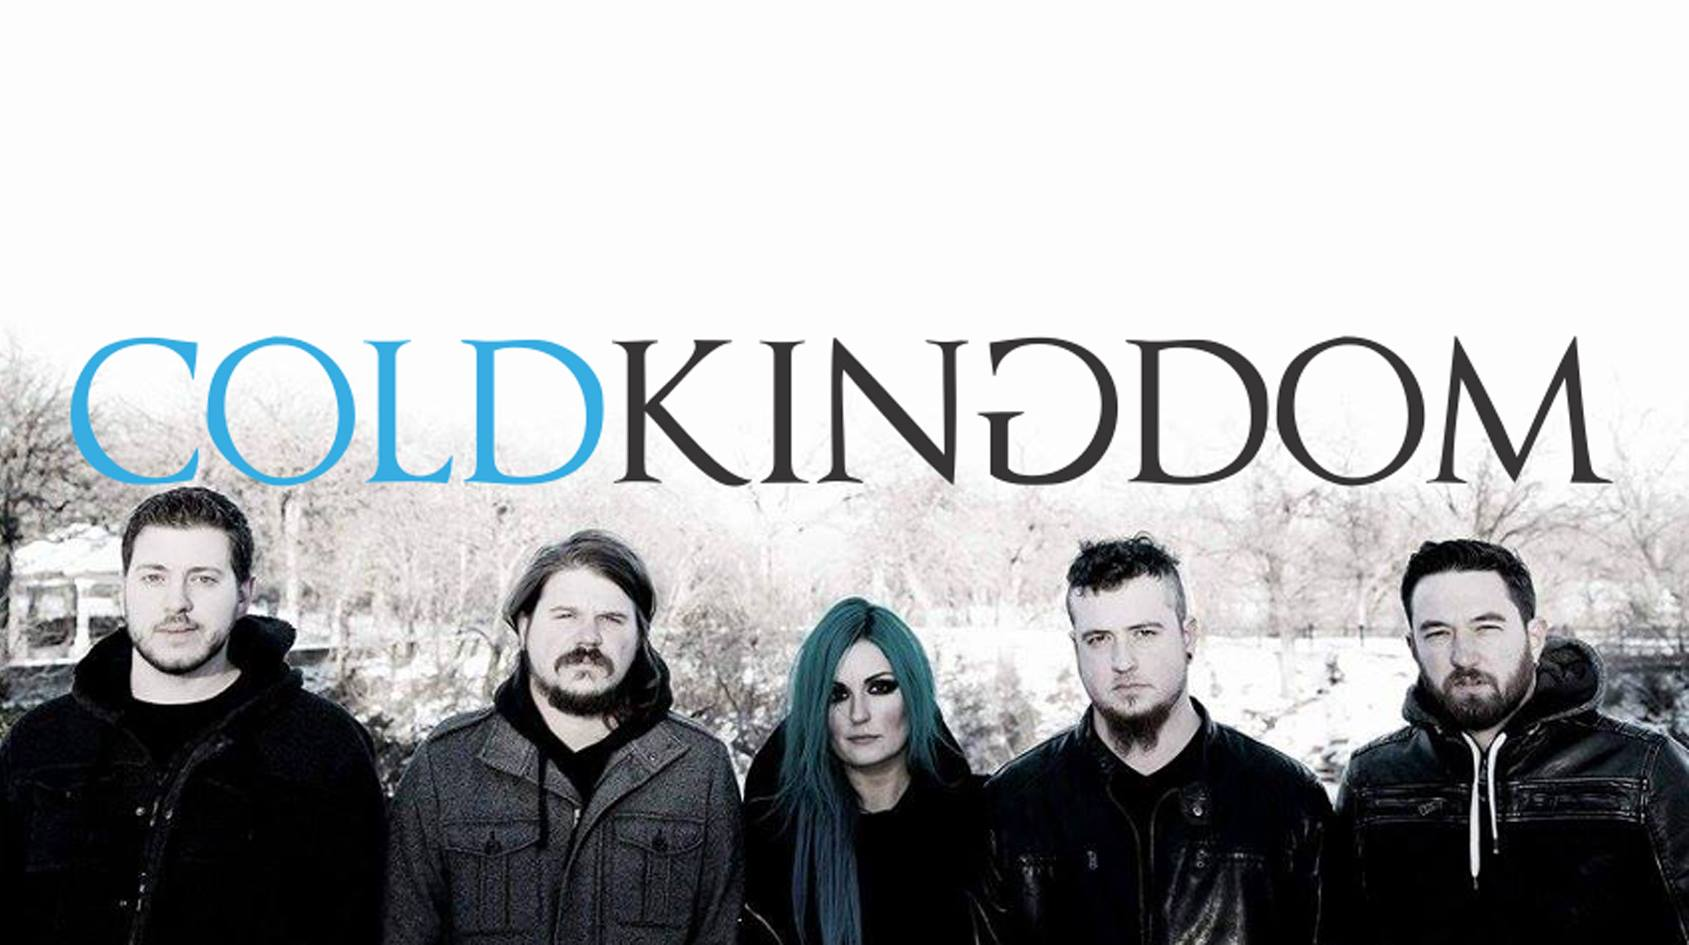 Live Music by Cold Kingdom at Chesterfield West in O'Neill, NE - 